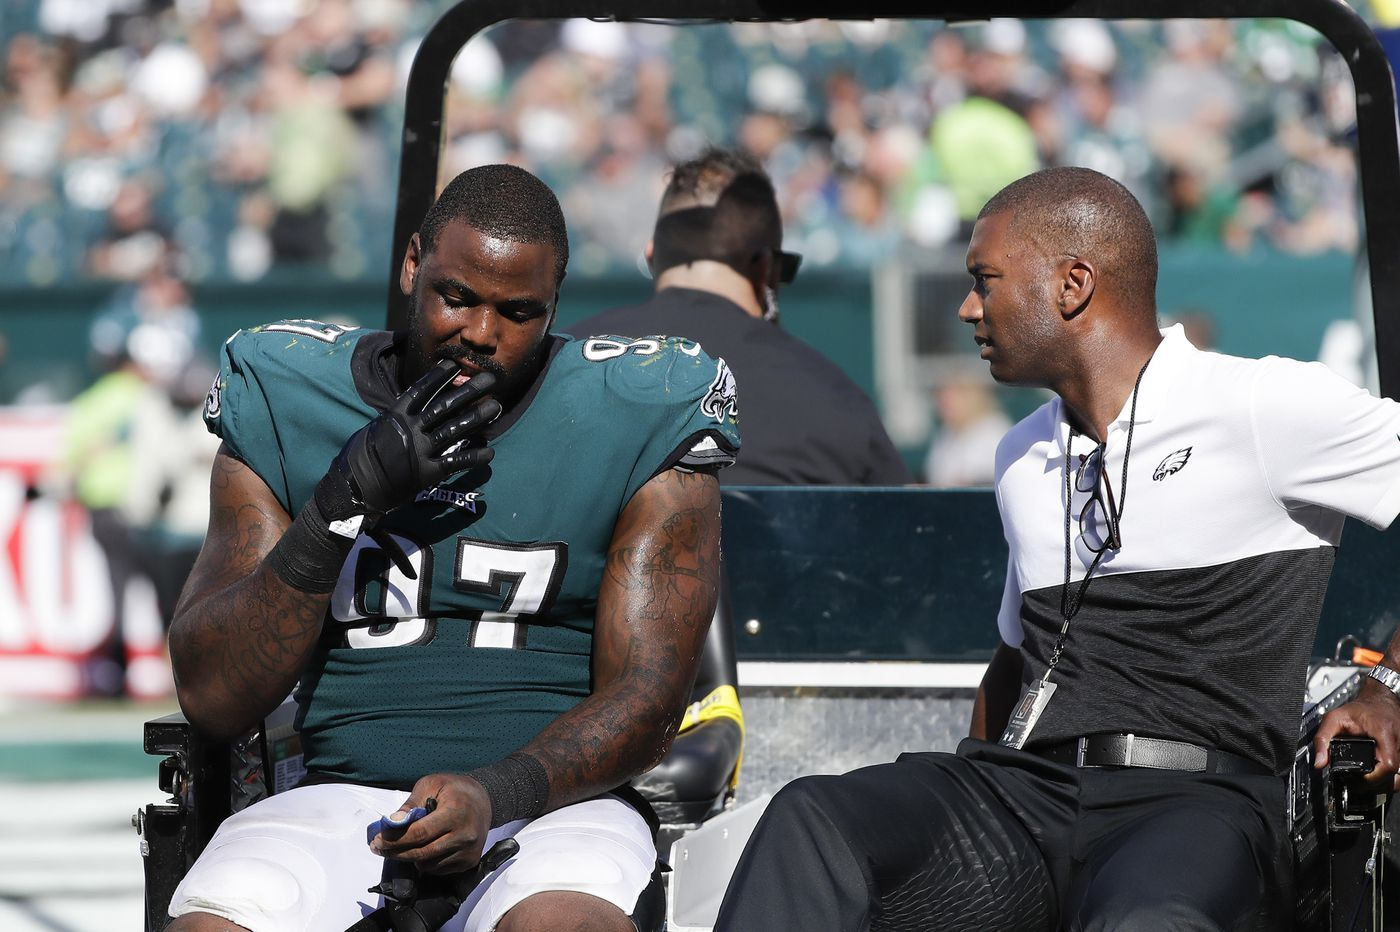 Eagles DT Malik Jackson to have Lisfranc surgery and likely be out for season, report says